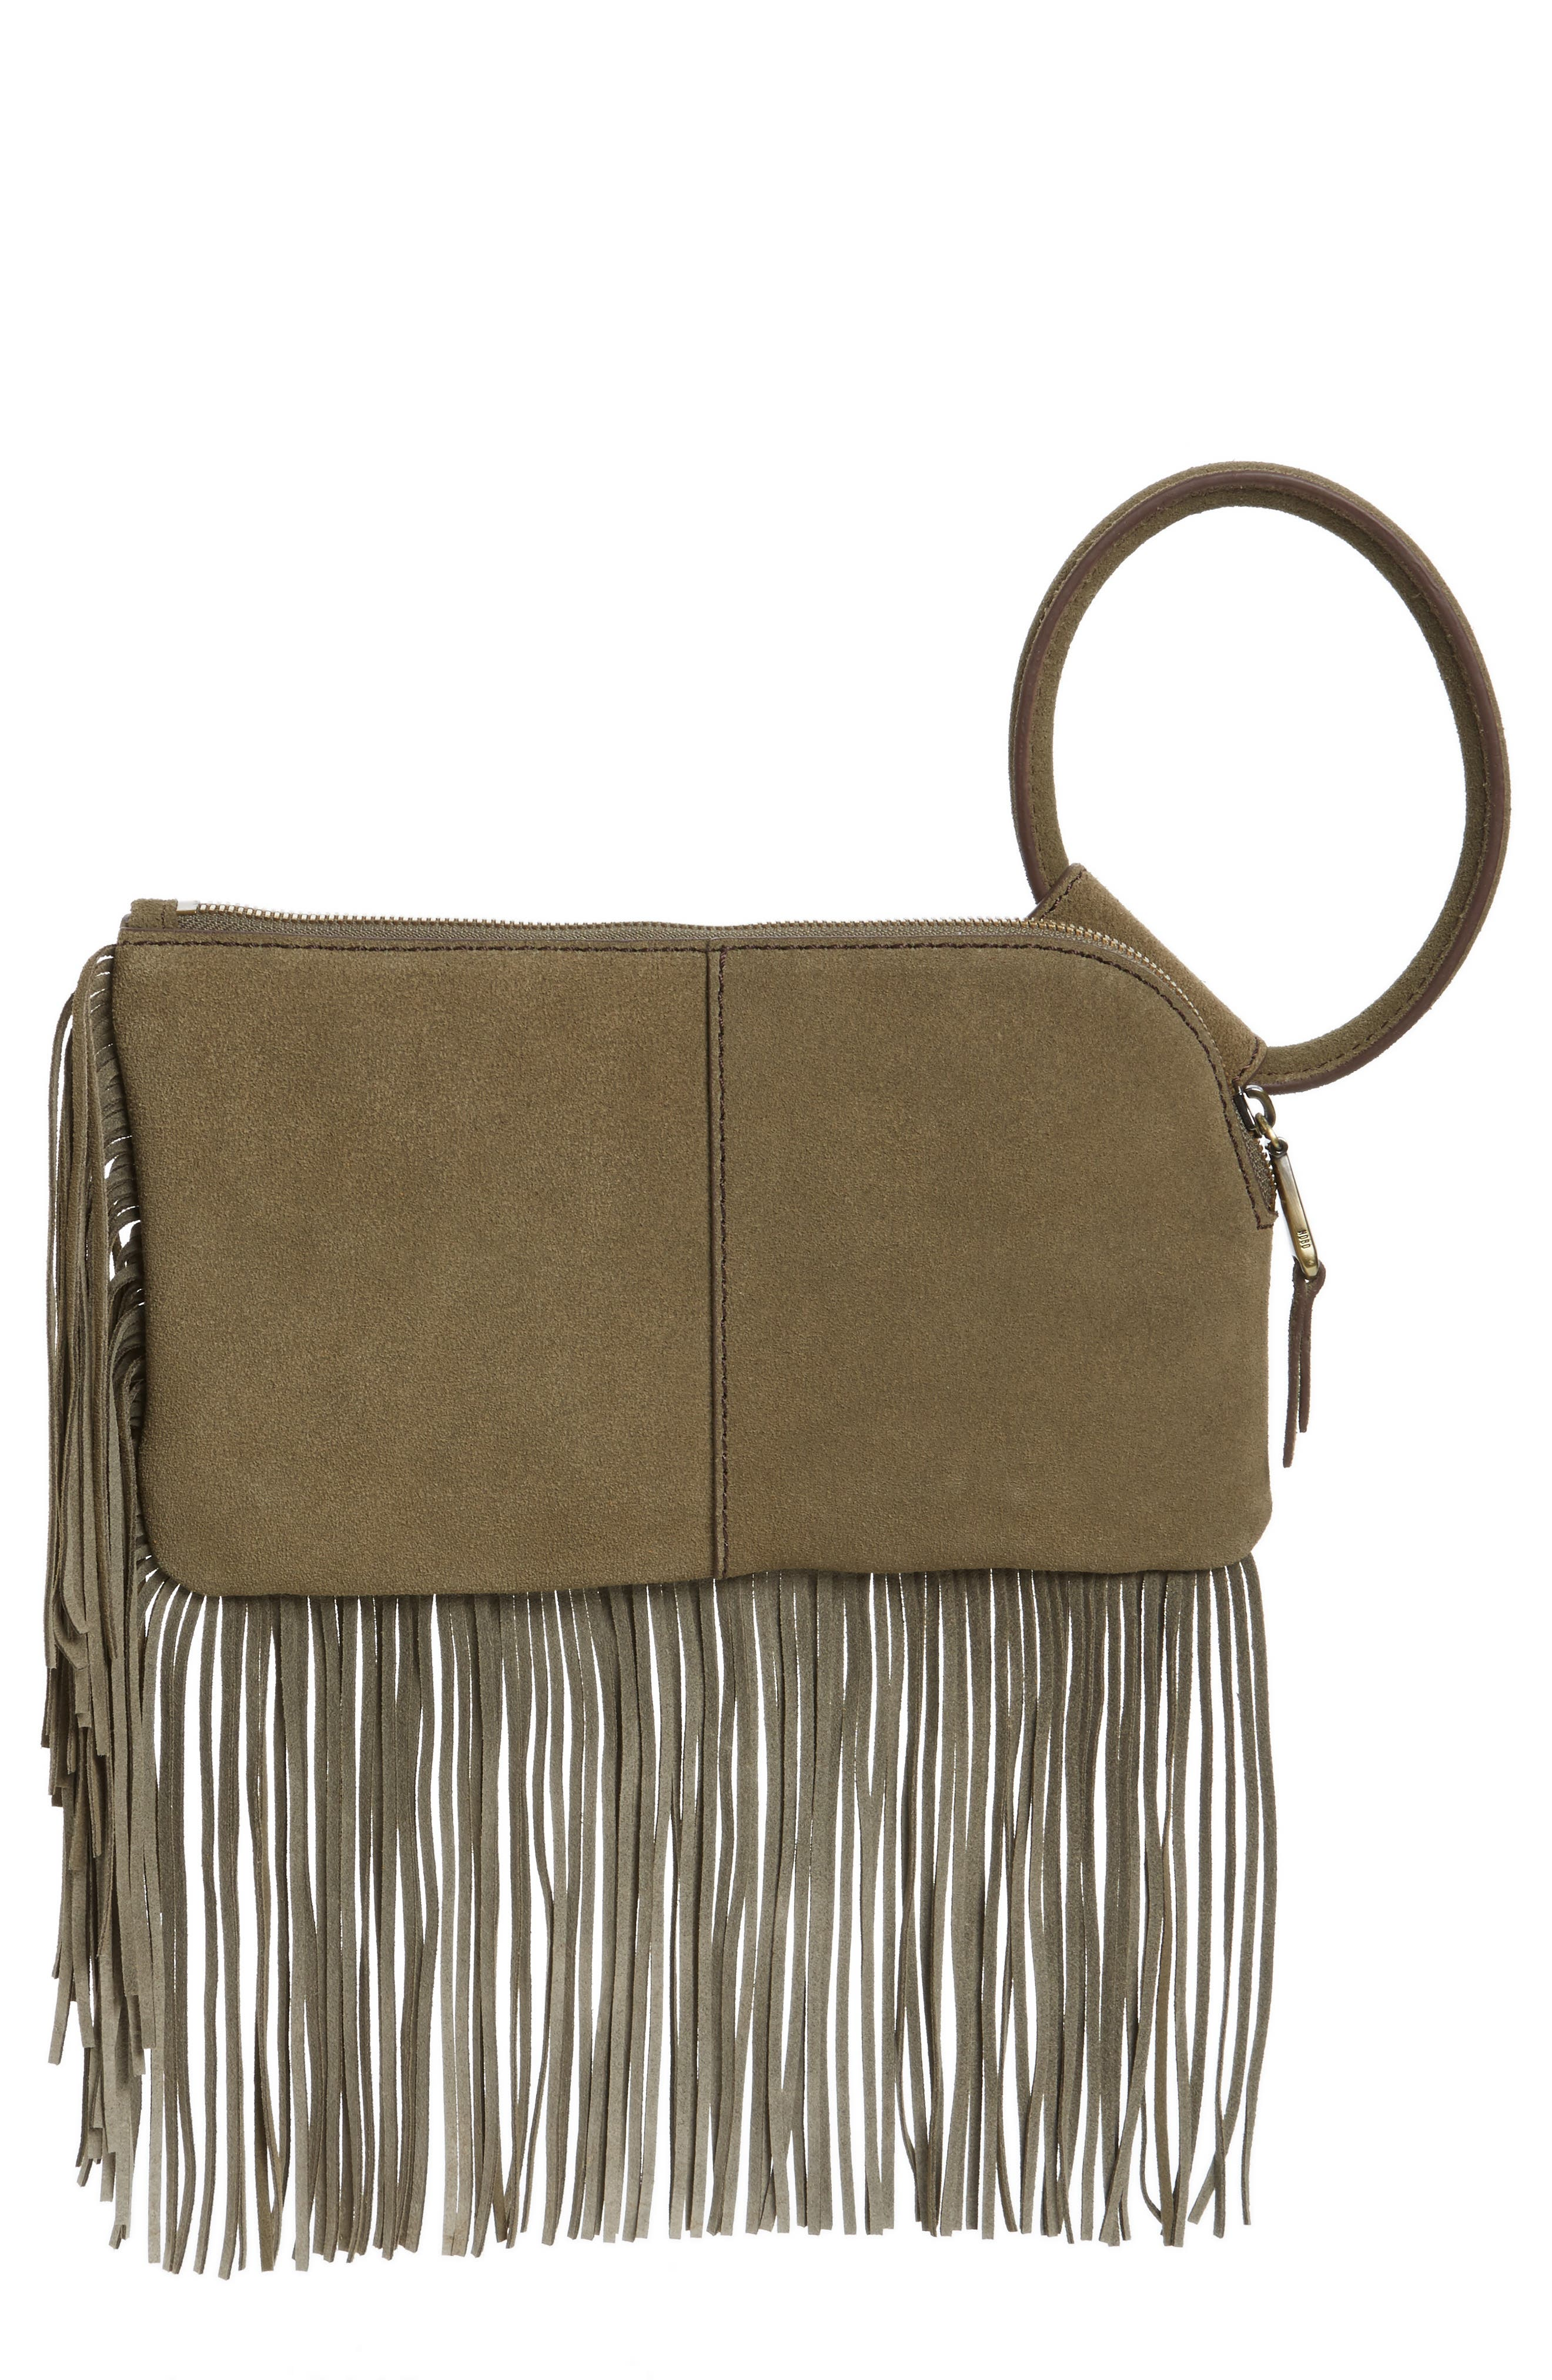 Alternate Image 1 Selected - Hobo Sable Leather Clutch